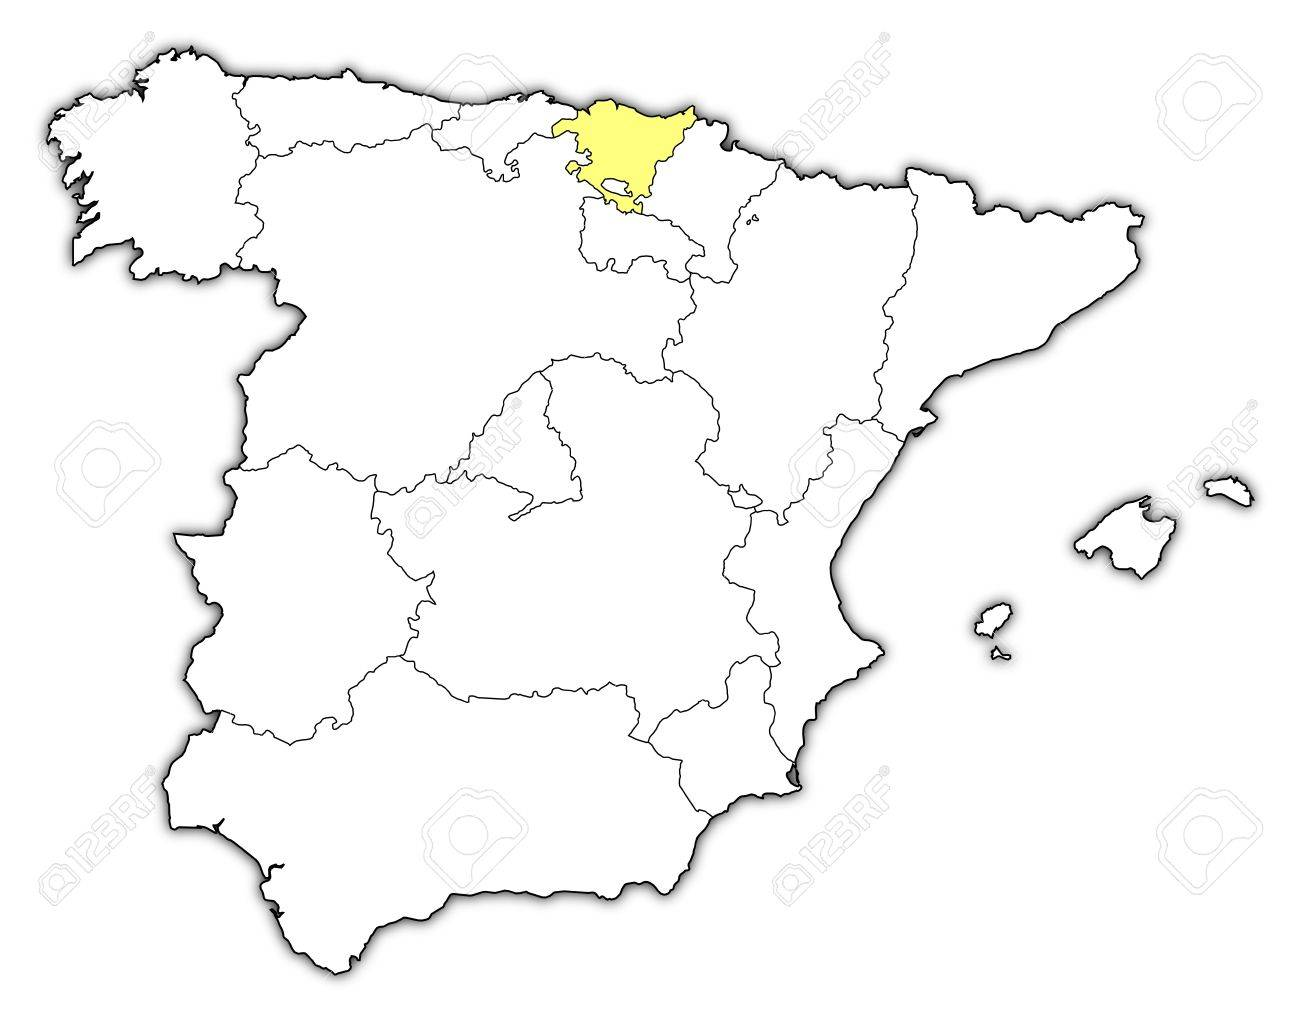 Political Map Of Spain With The Several Regions Where Basque